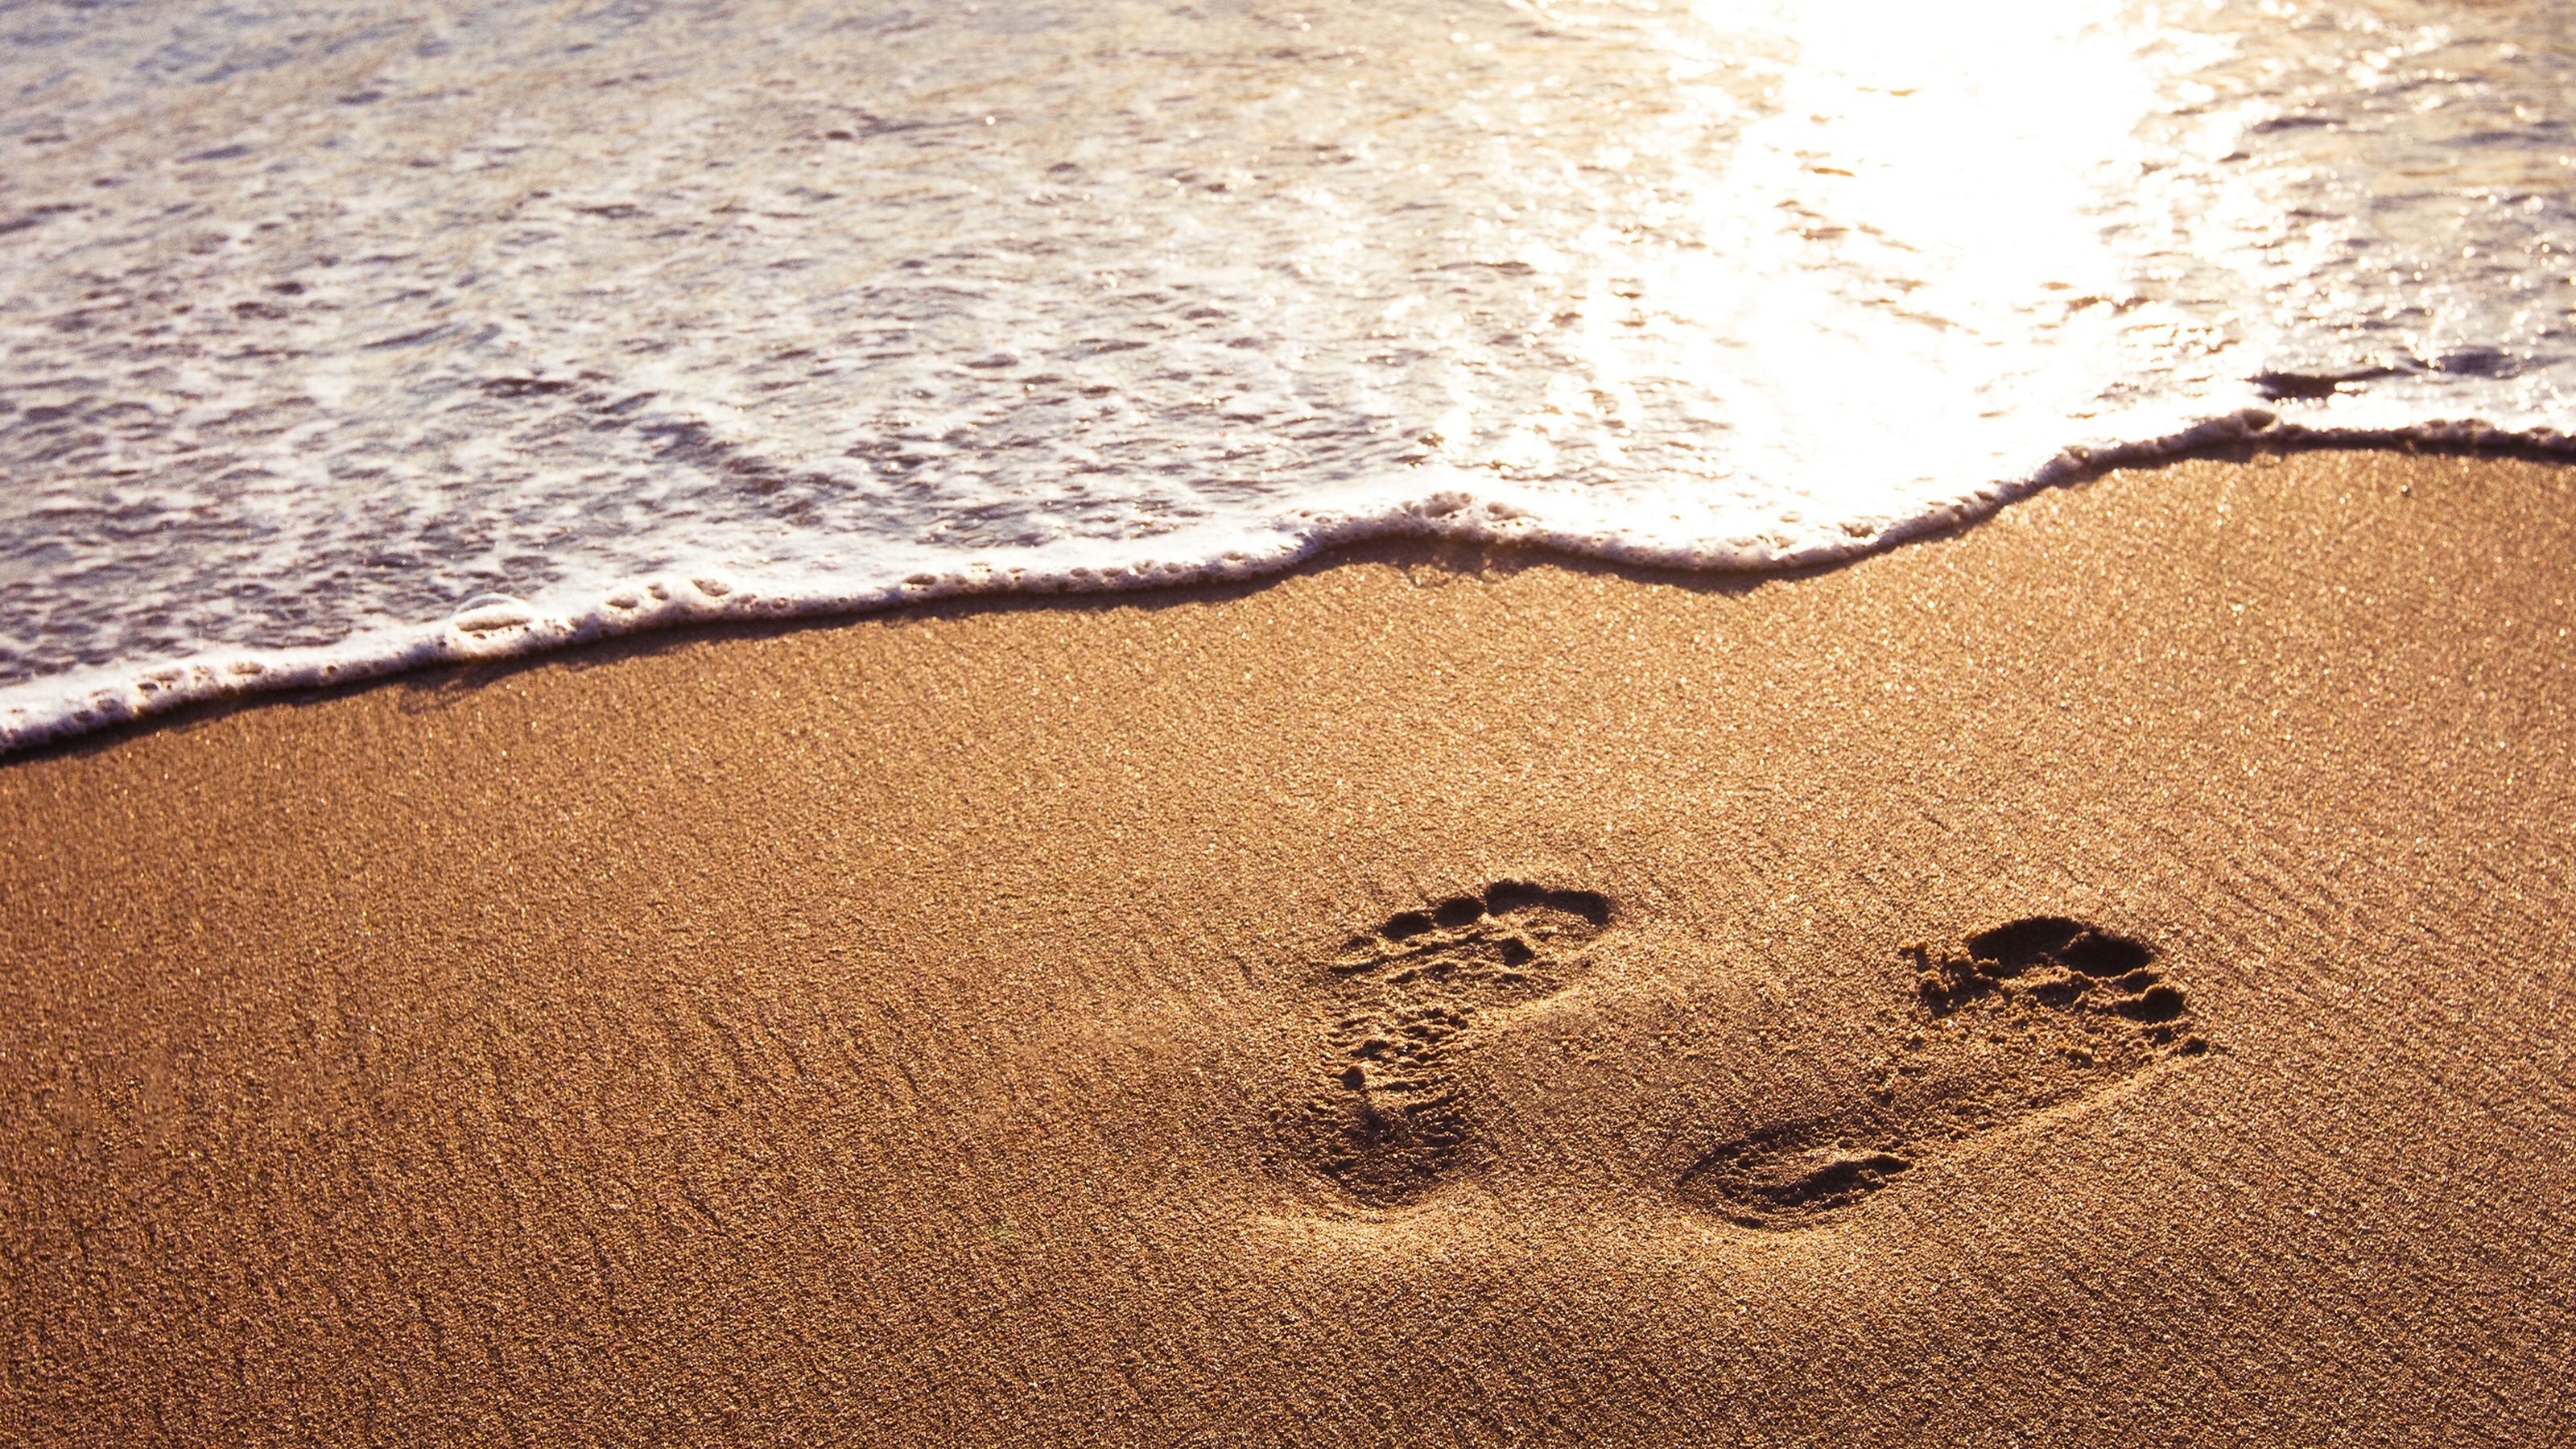 footprints on the sand with wave breaking on shore